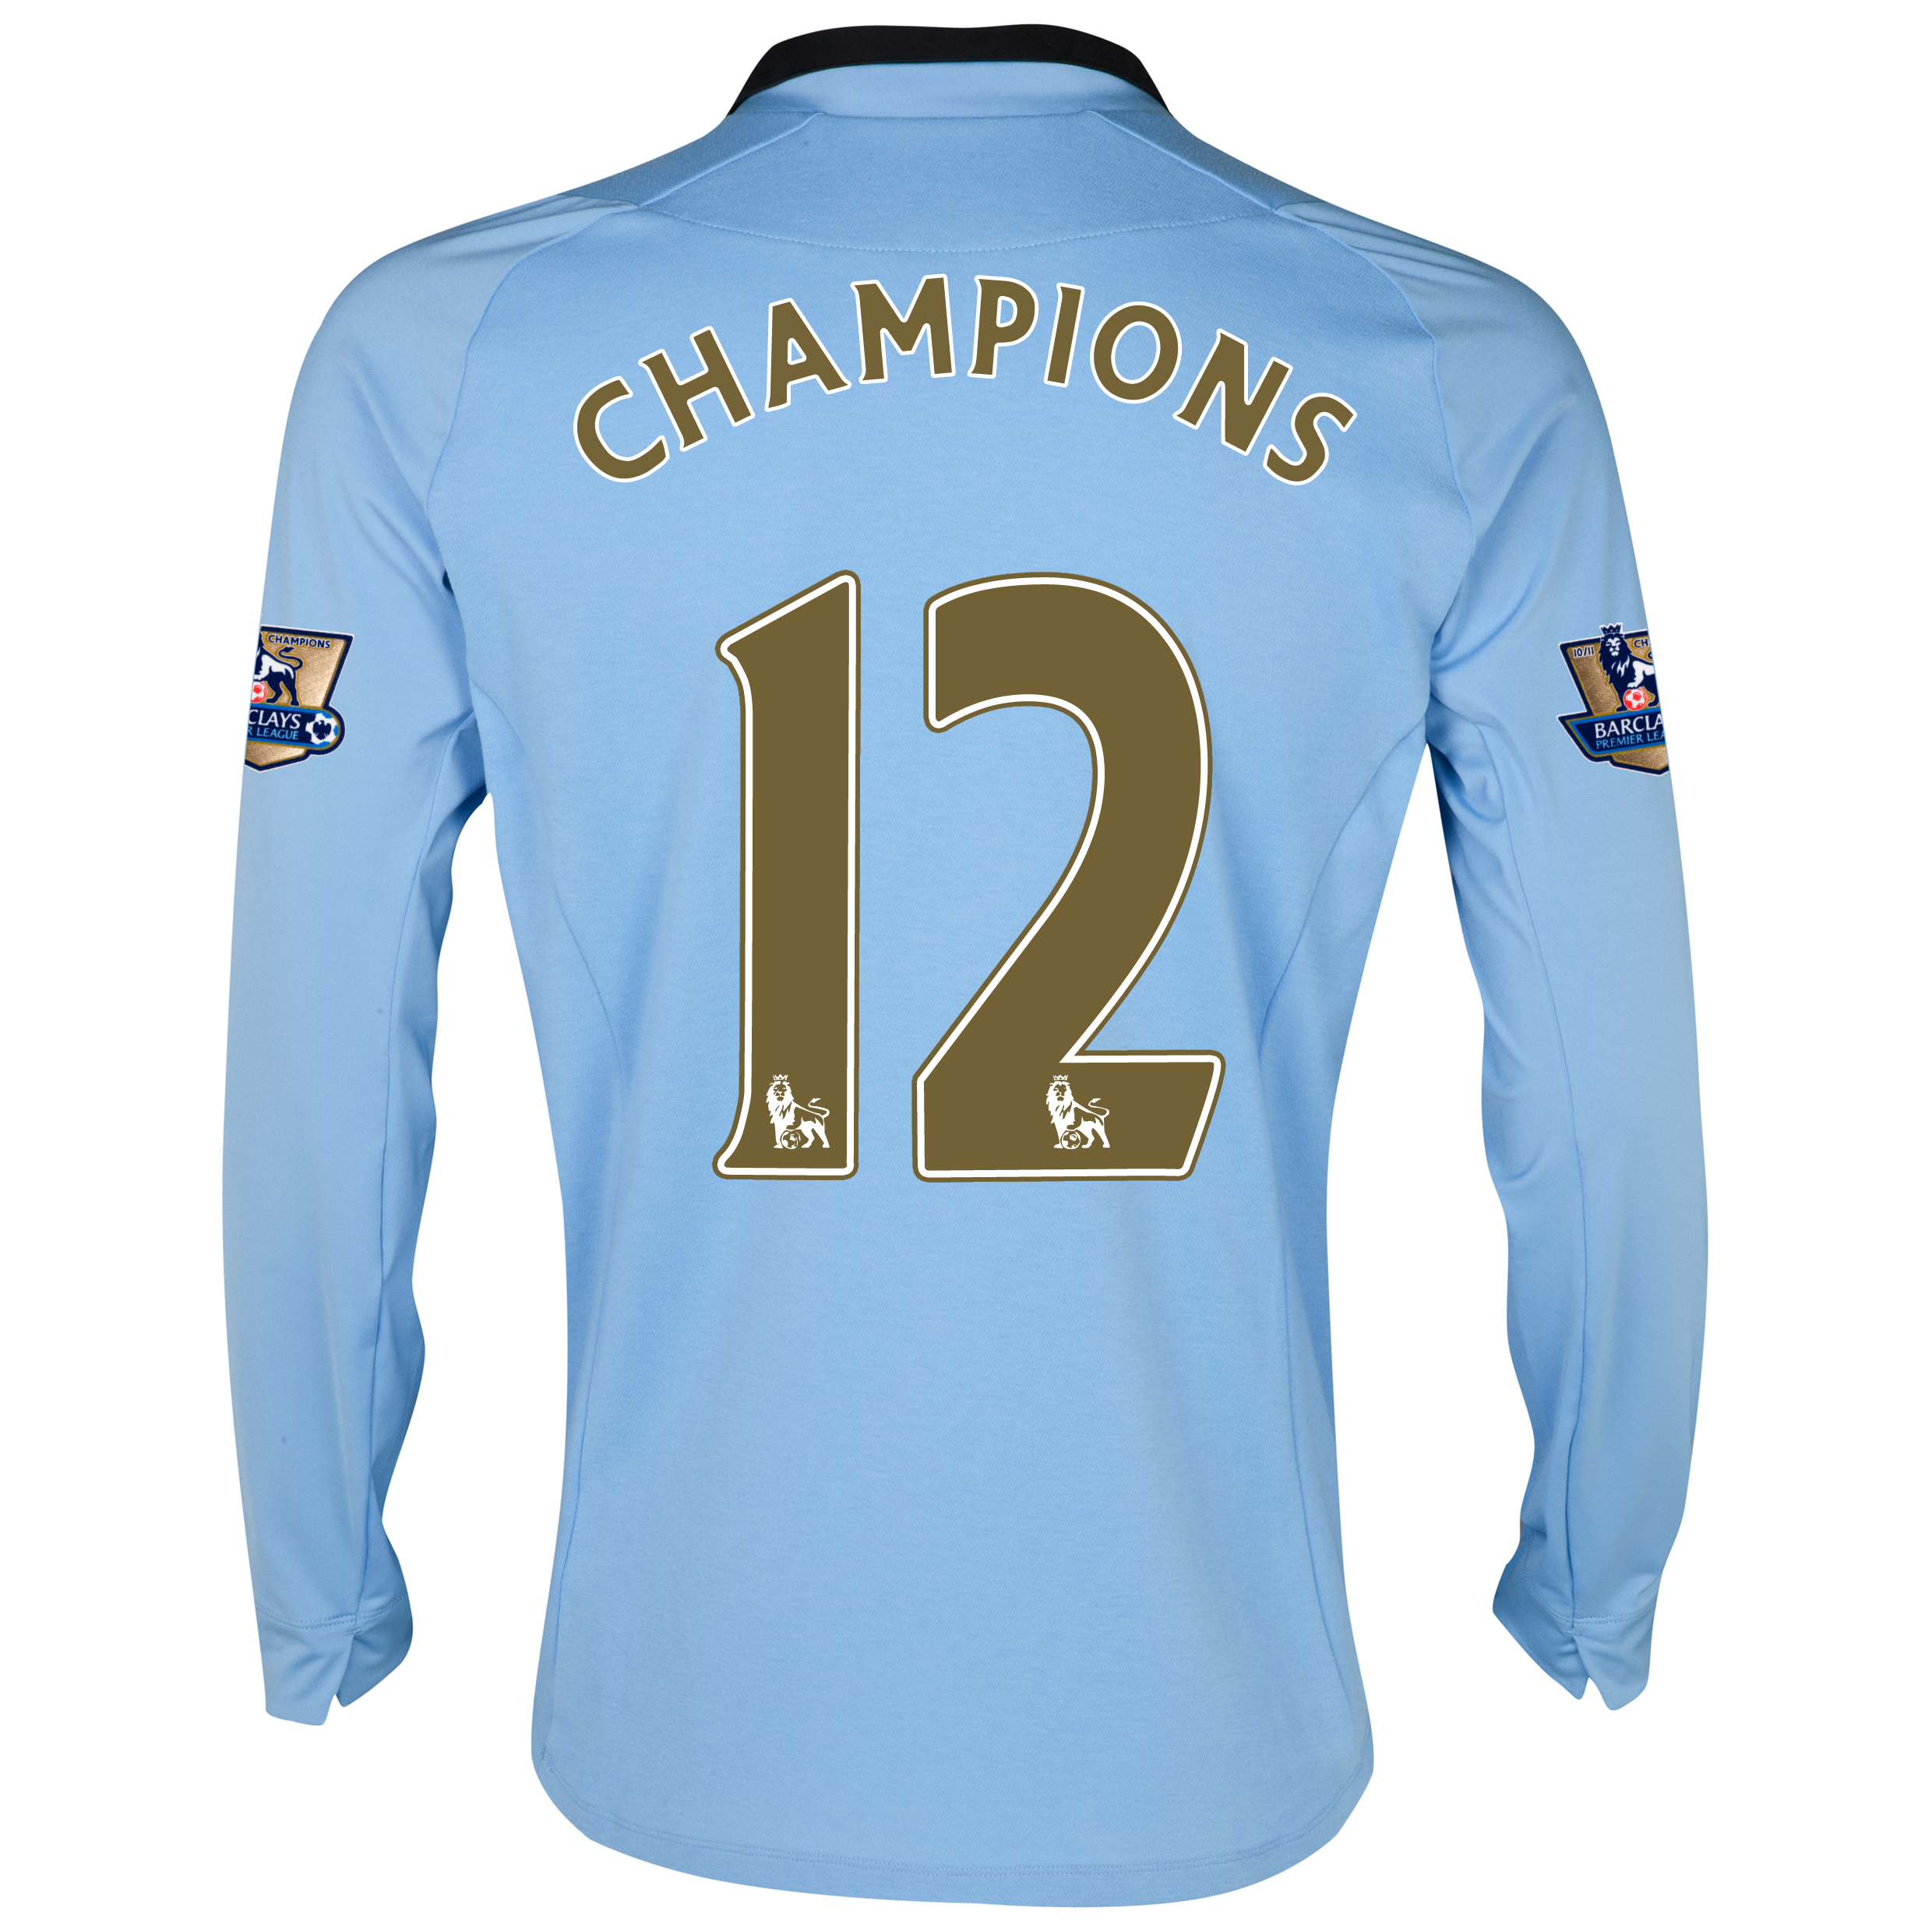 Manchester City Home Shirt 2012/13 - Long Sleeved with Champions 12 printing and Premier League Champions Badges